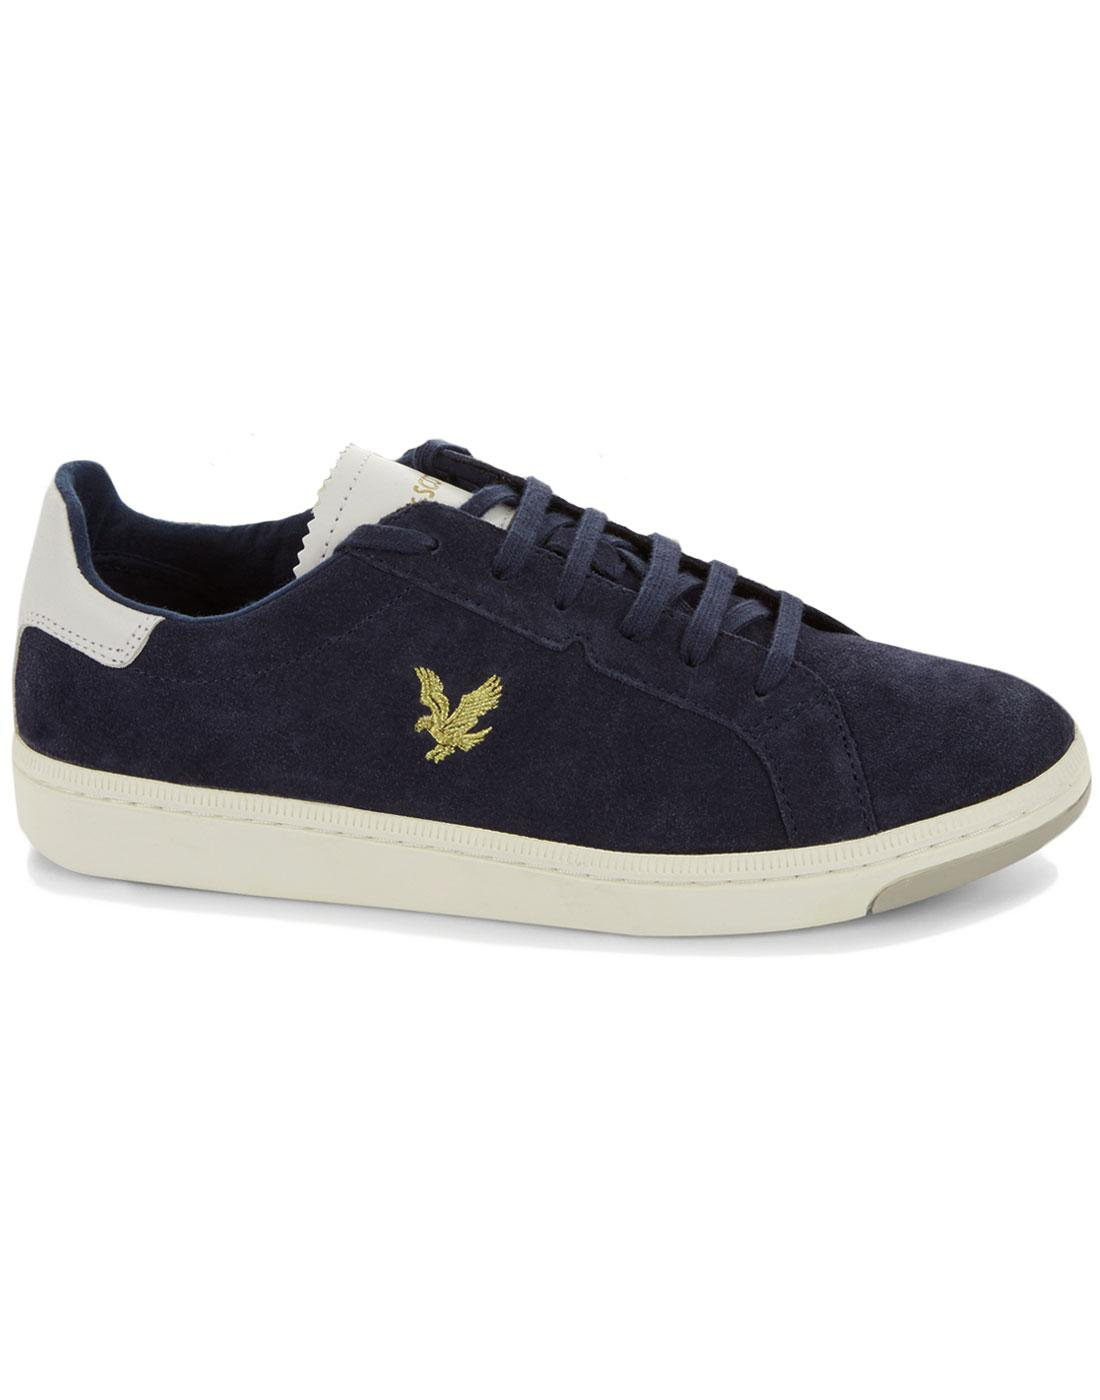 Burchill LYLE & SCOTT Retro Suede Trainers NAVY